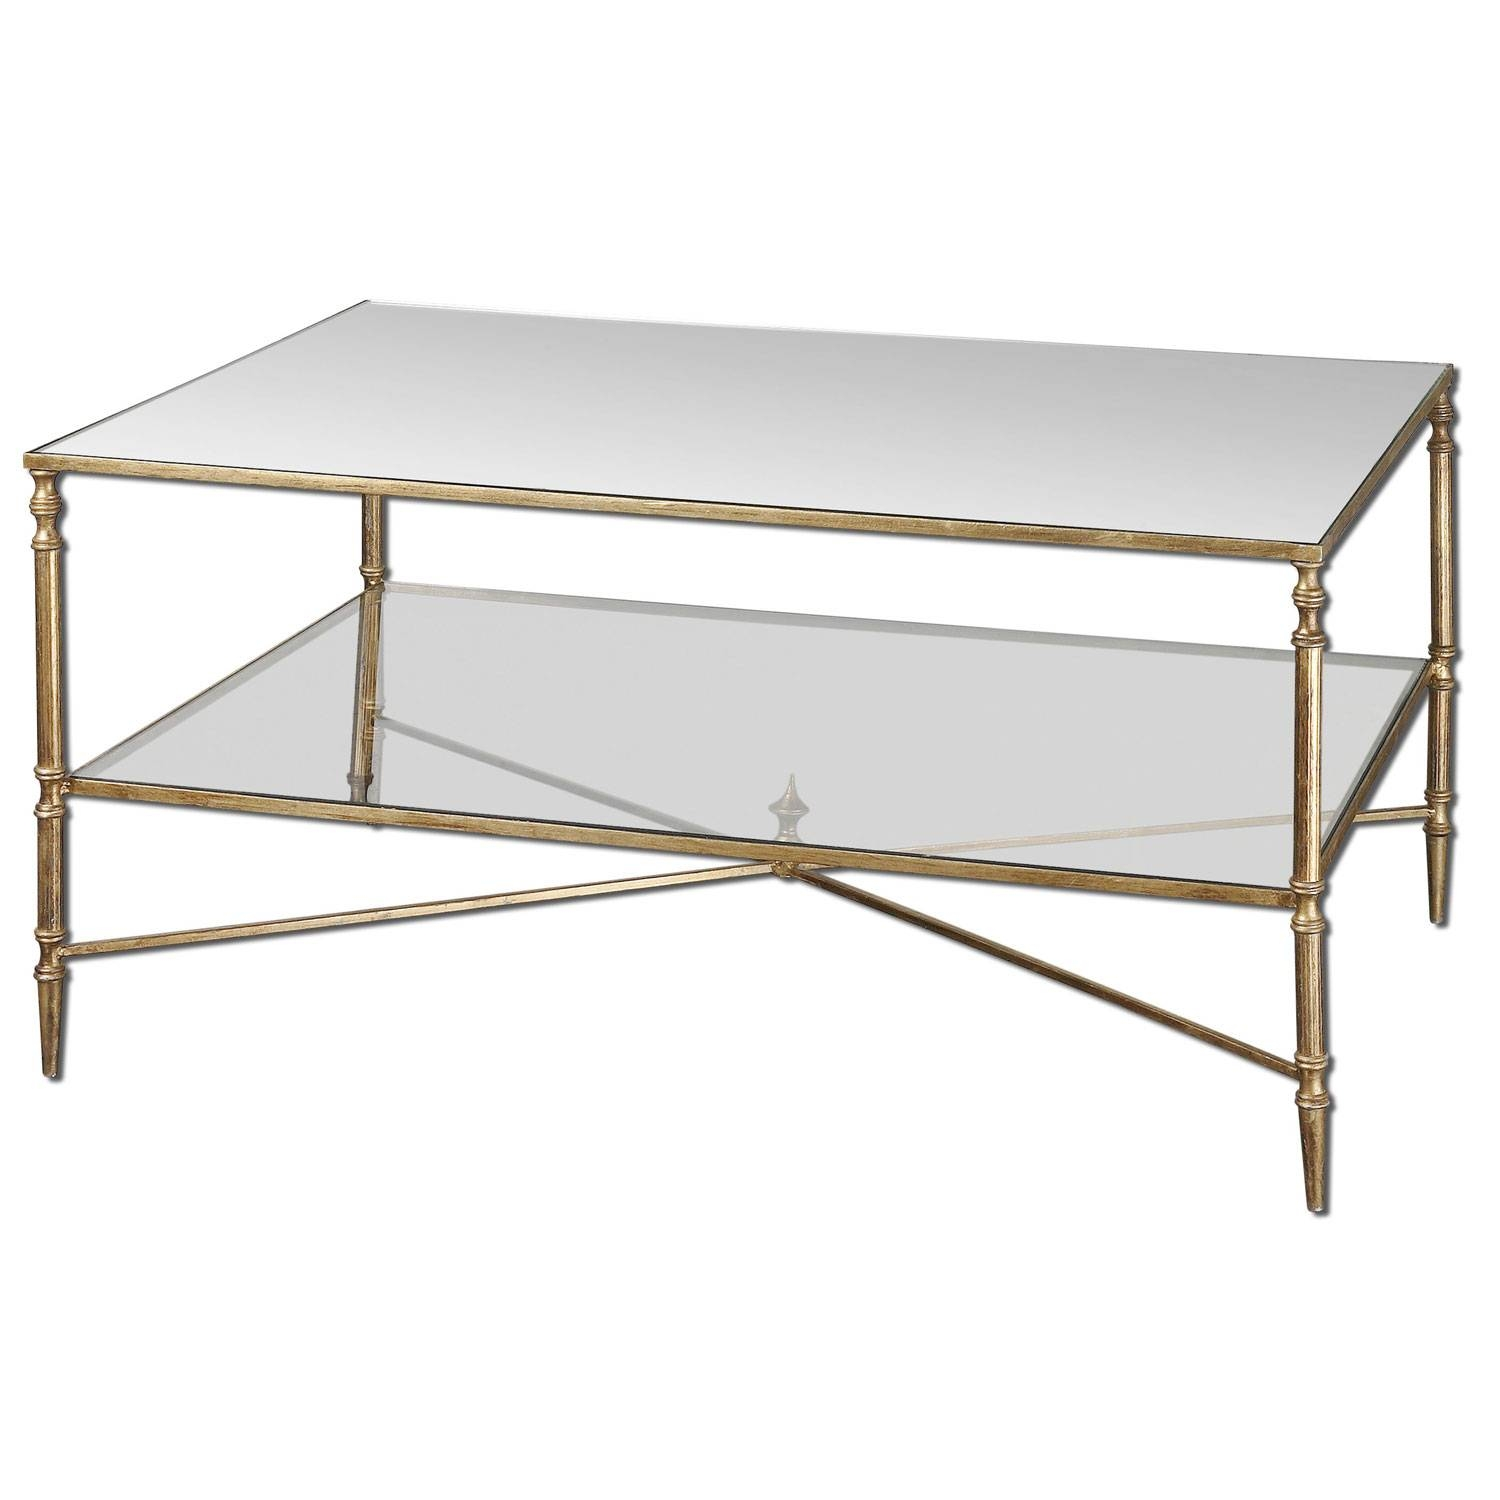 Uttermost Gold Henzler Coffee Table On Sale inside Mirror Glass Coffee Table (Image 13 of 15)